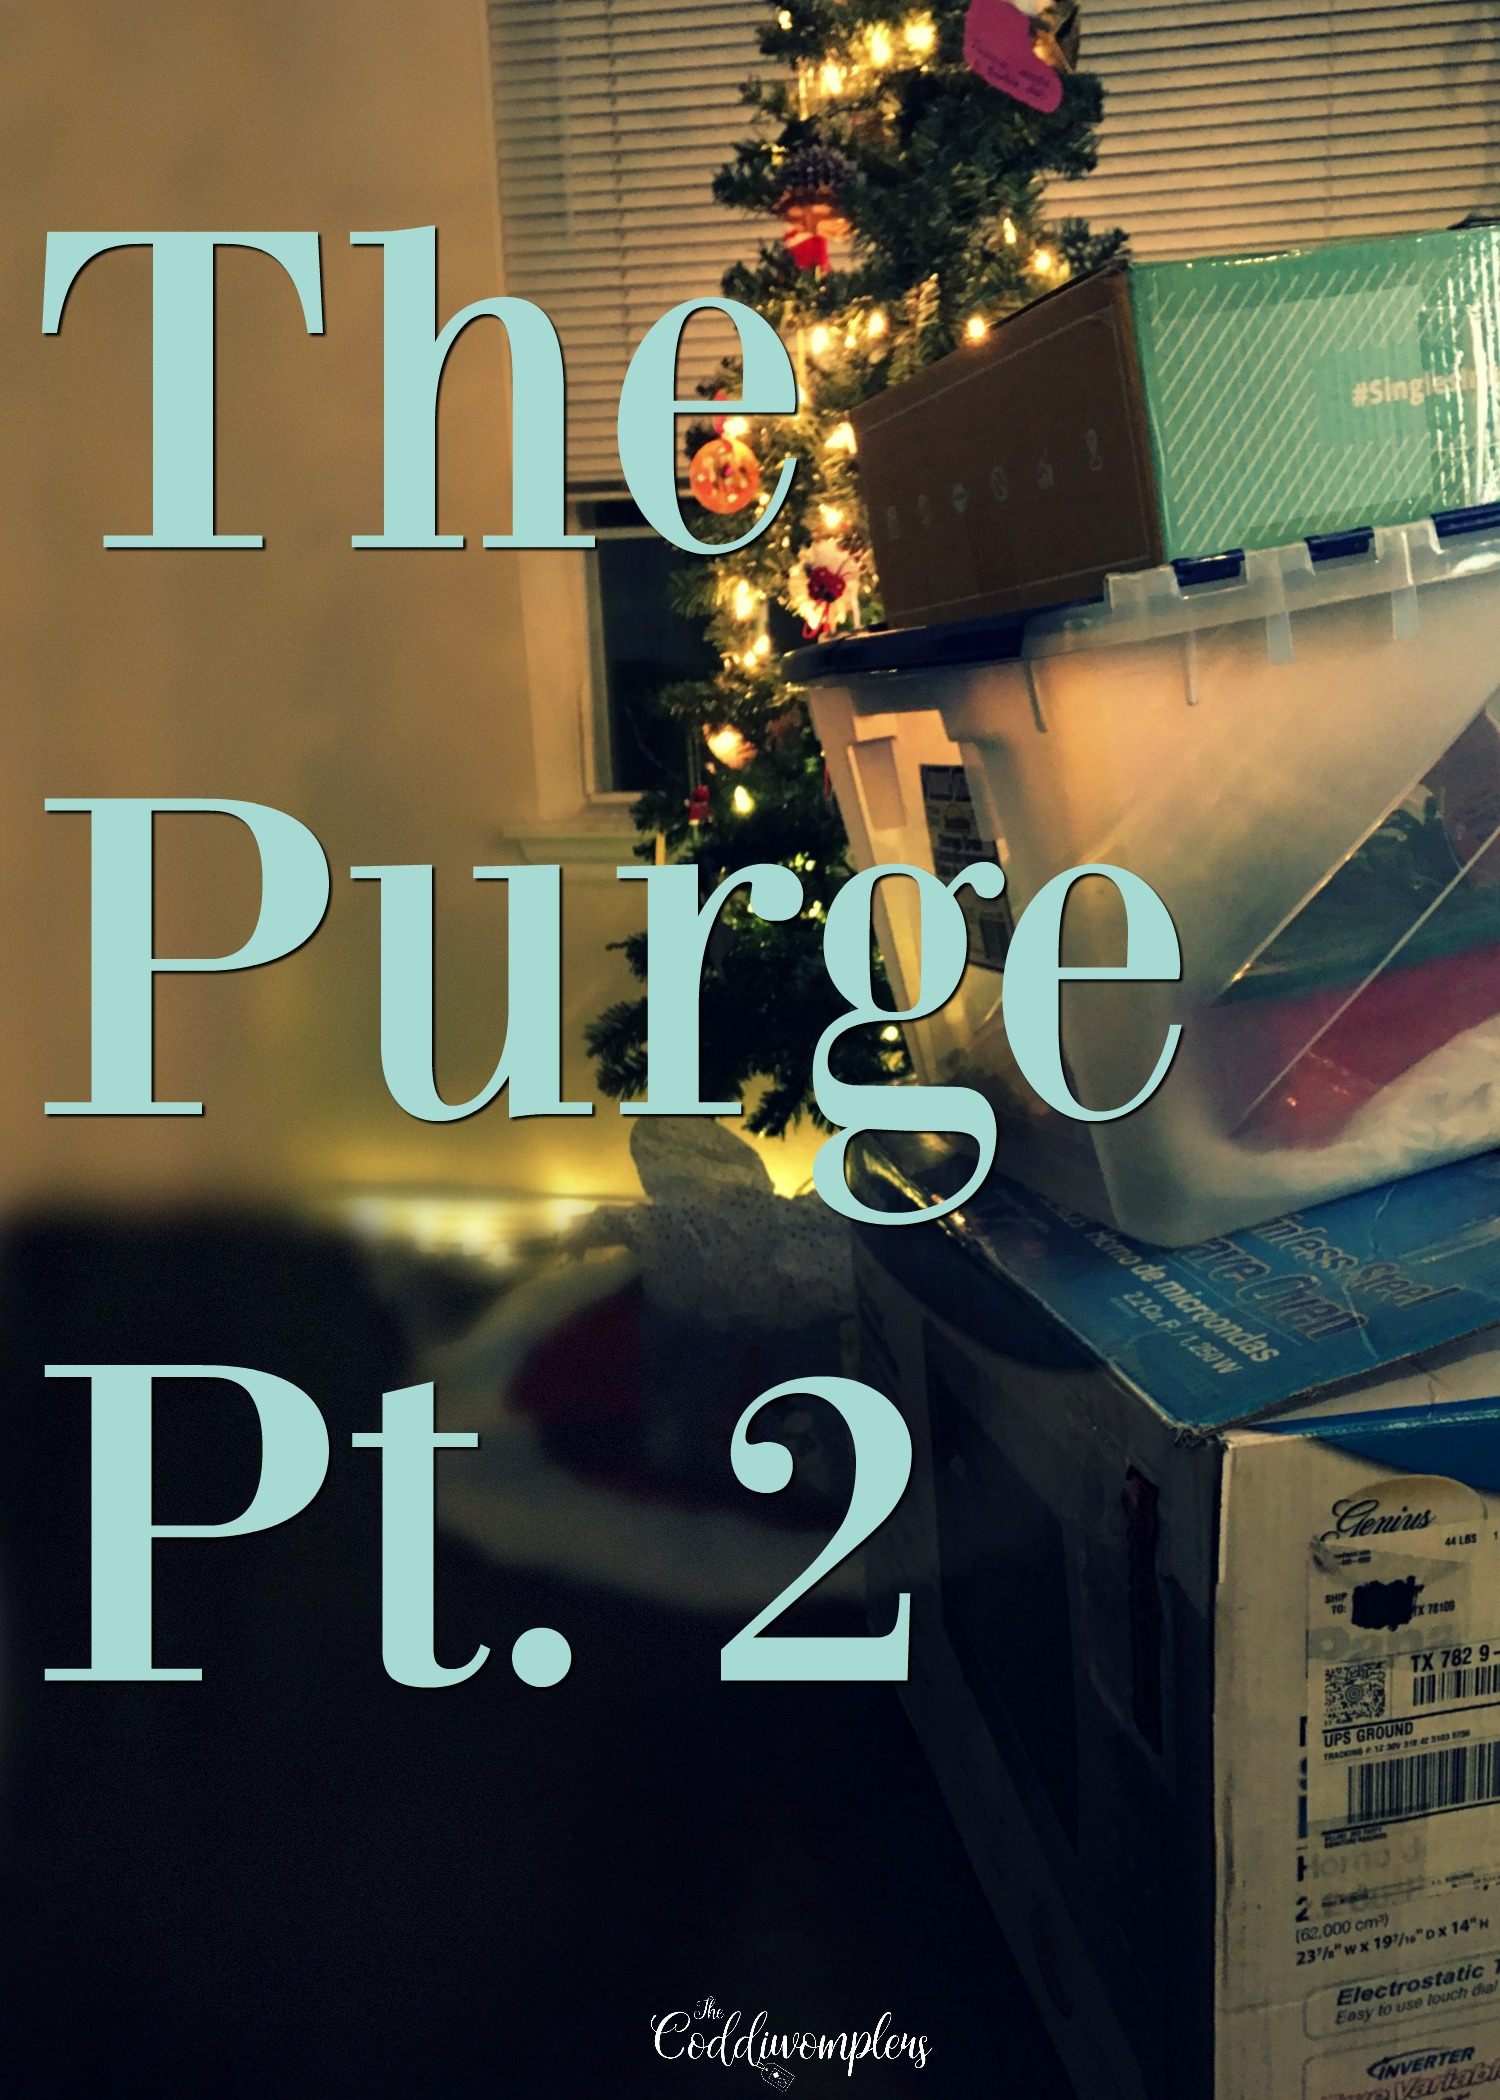 Yes, it is time again to go through all of my stuff and figure out what has to go, with this part 2 of the purge being the hardest